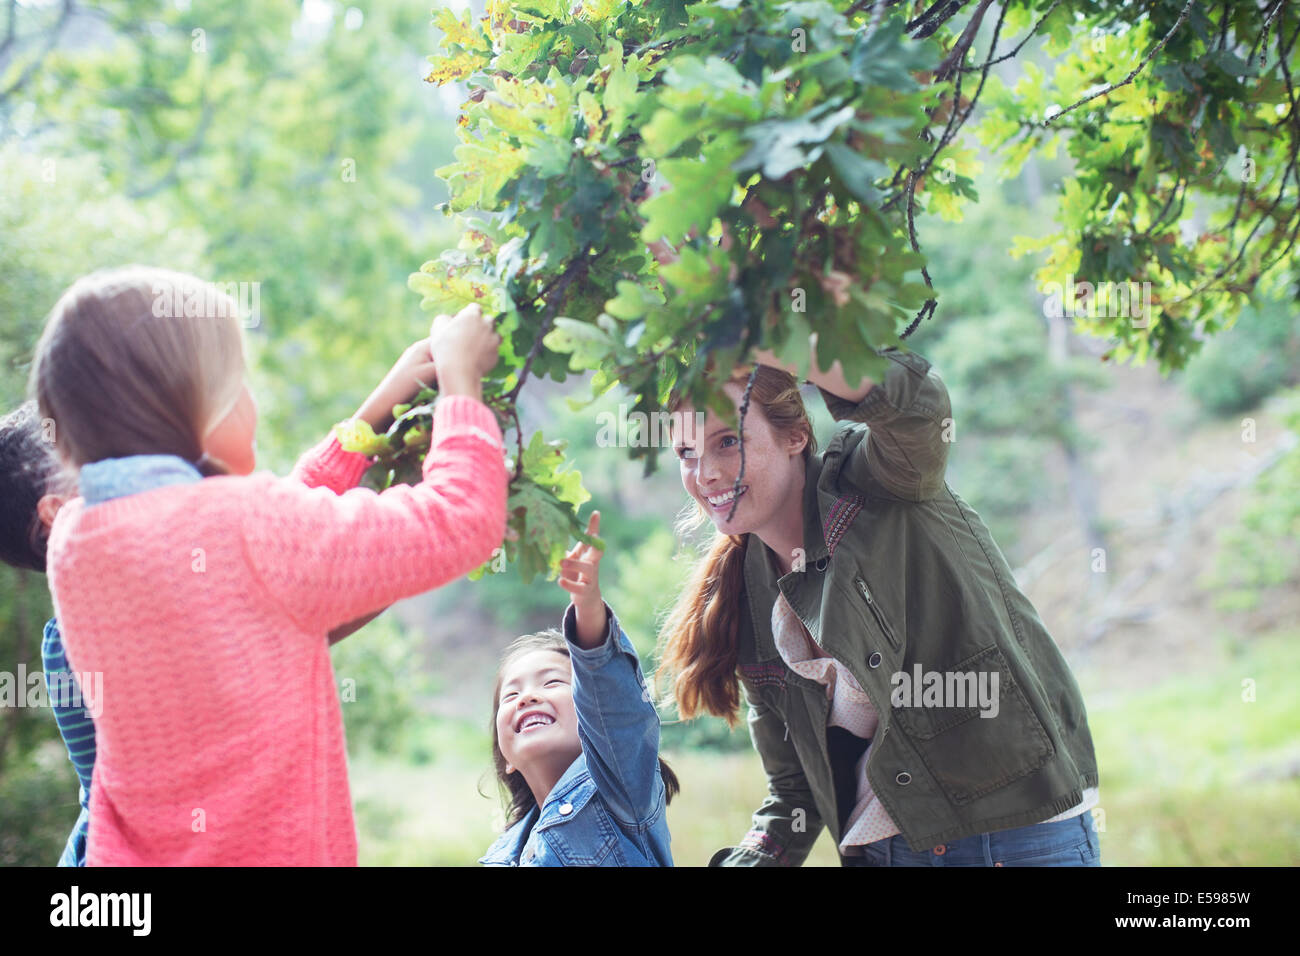 Students and teacher examining leaves outdoors - Stock Image